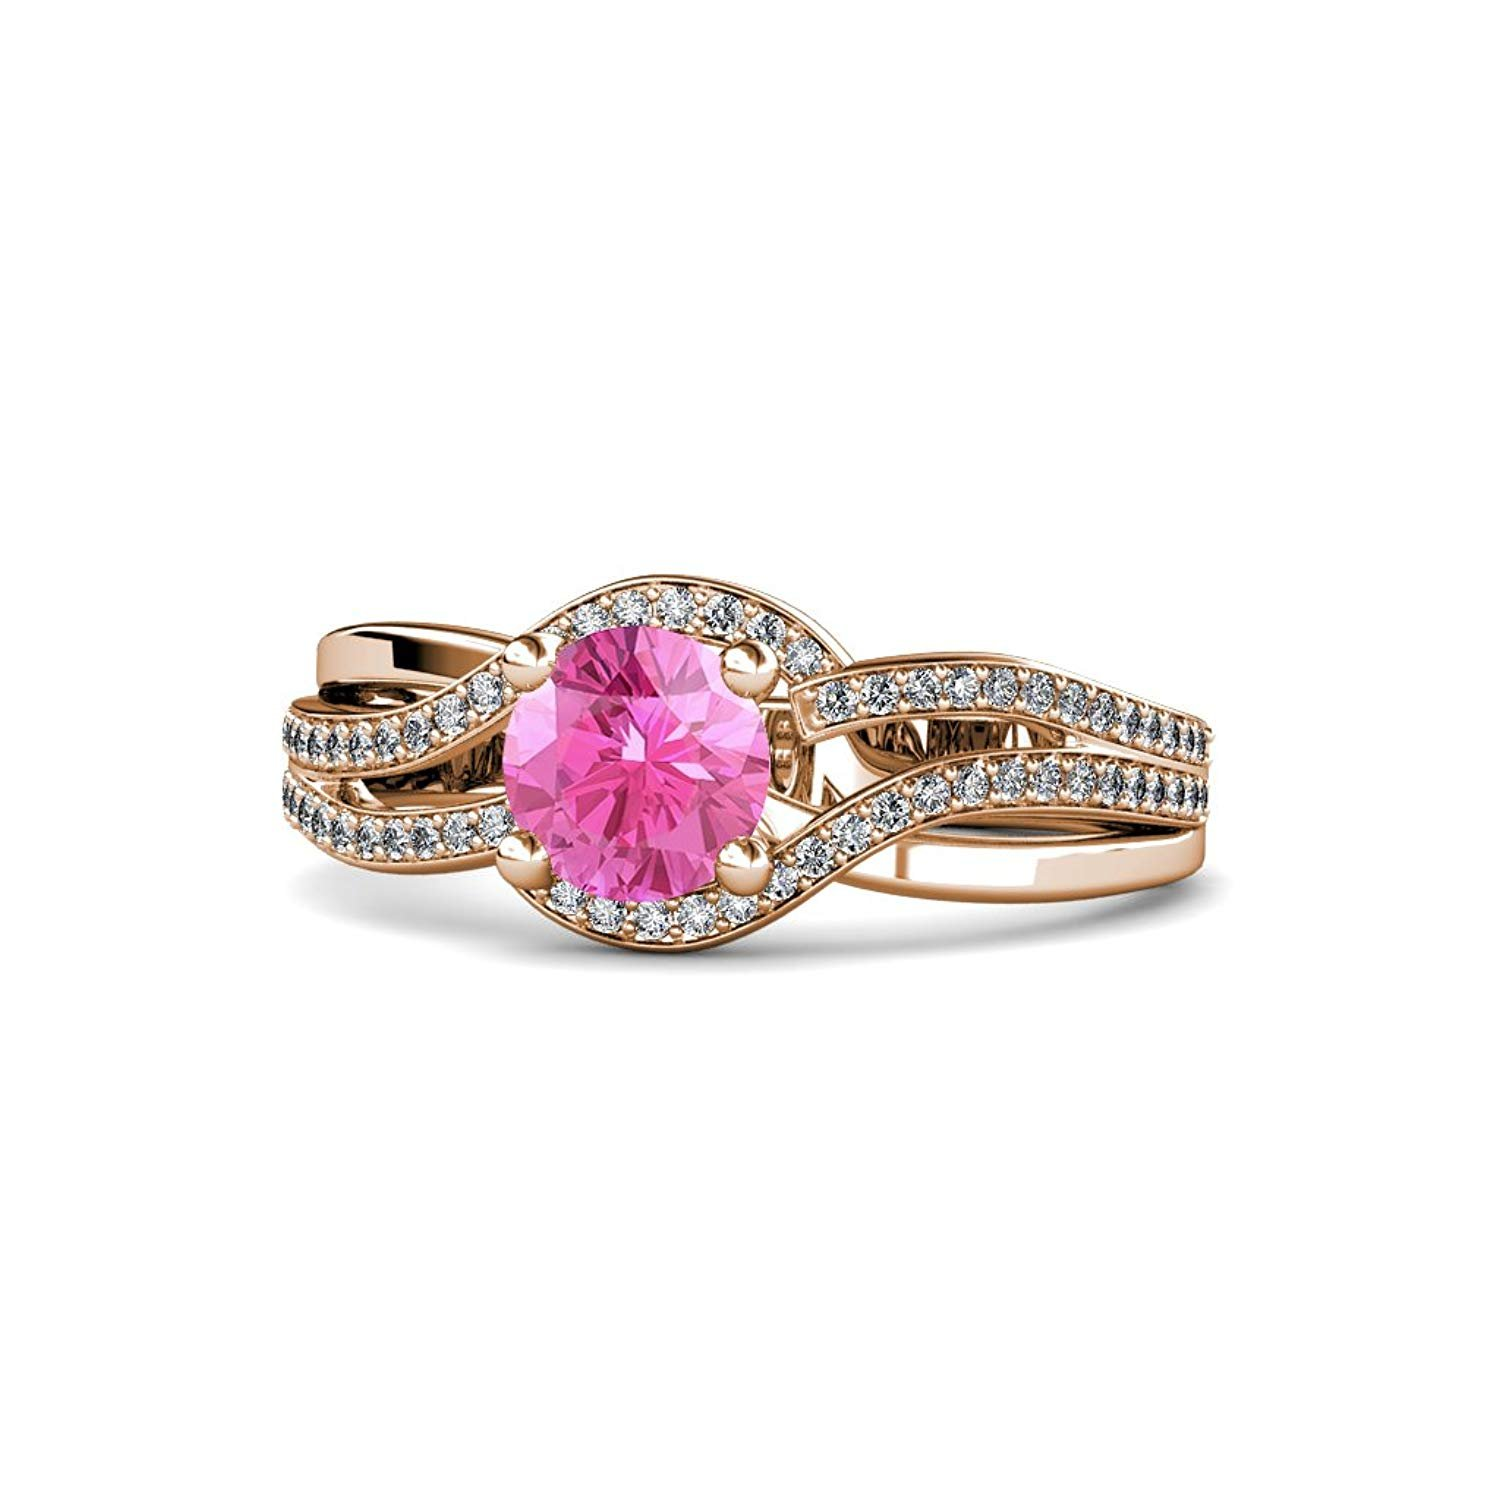 Pink Sapphire and Diamond Bypass Halo Swirl Engagement Ring 1.26 ct tw in 14K Rose Gold by TriJewels